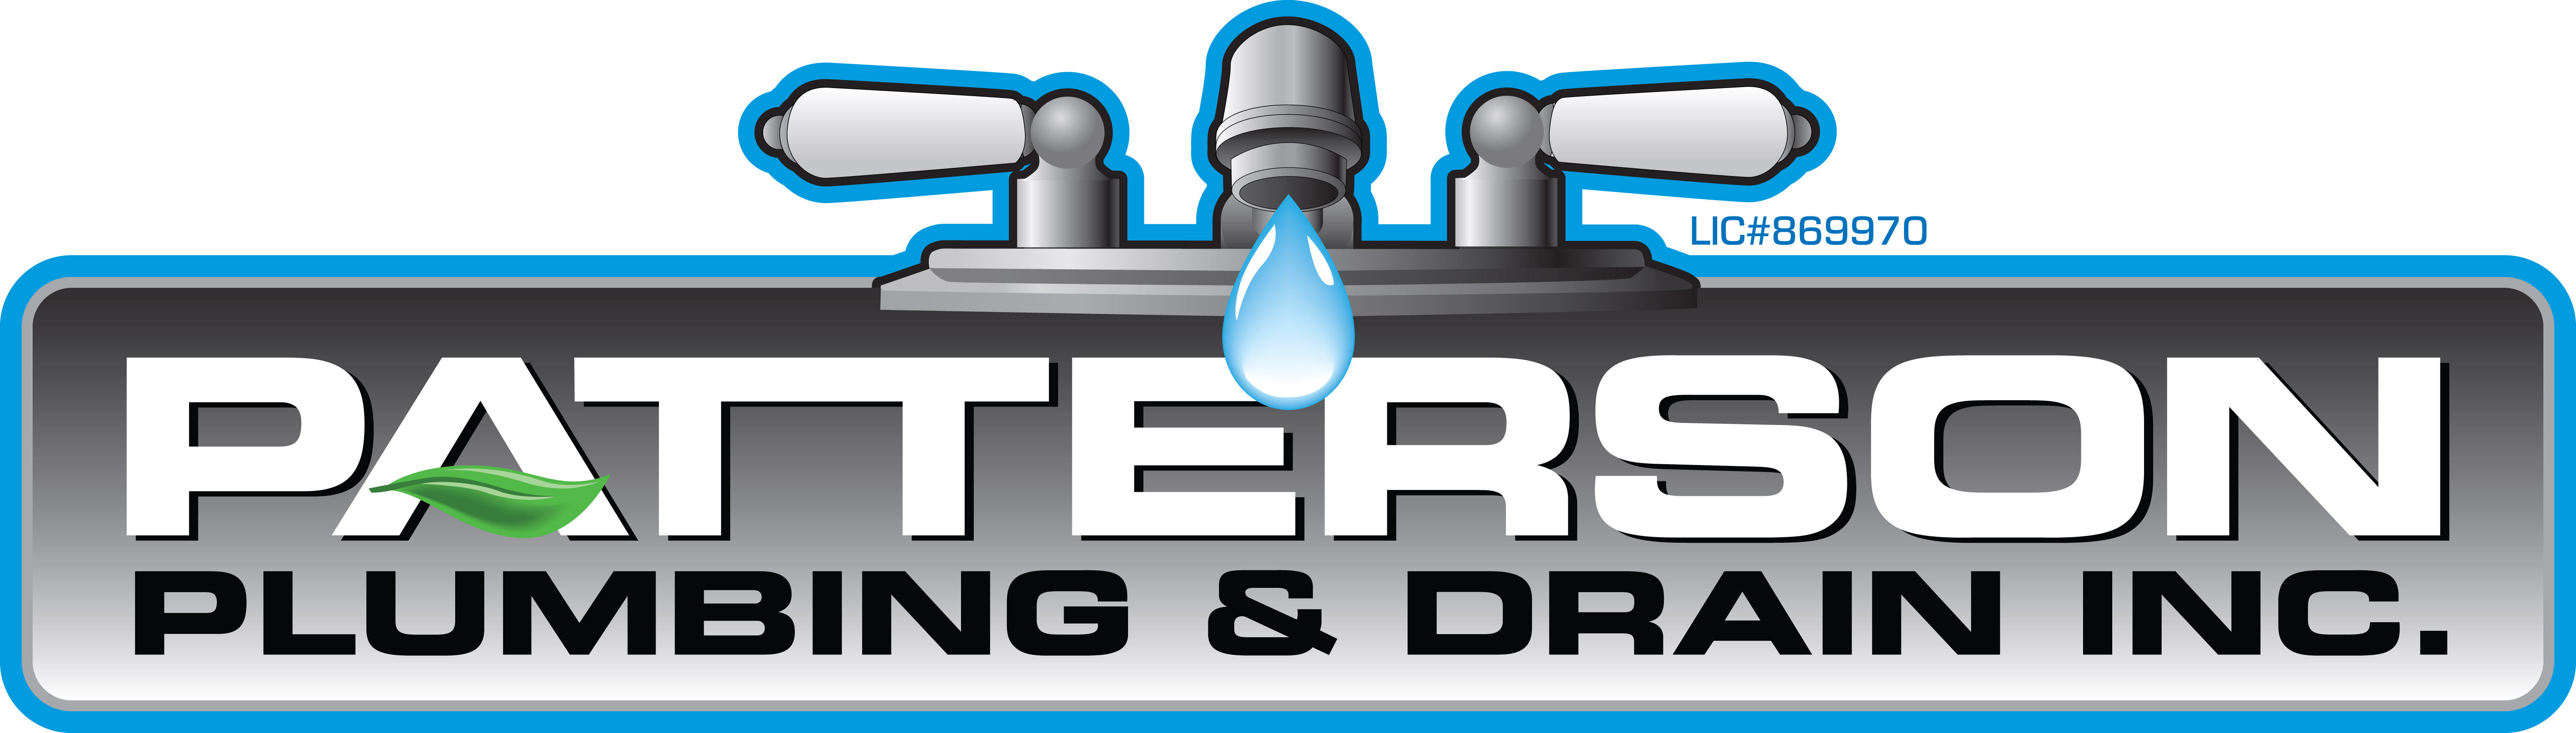 Patterson Plumbing and Drain Inc.